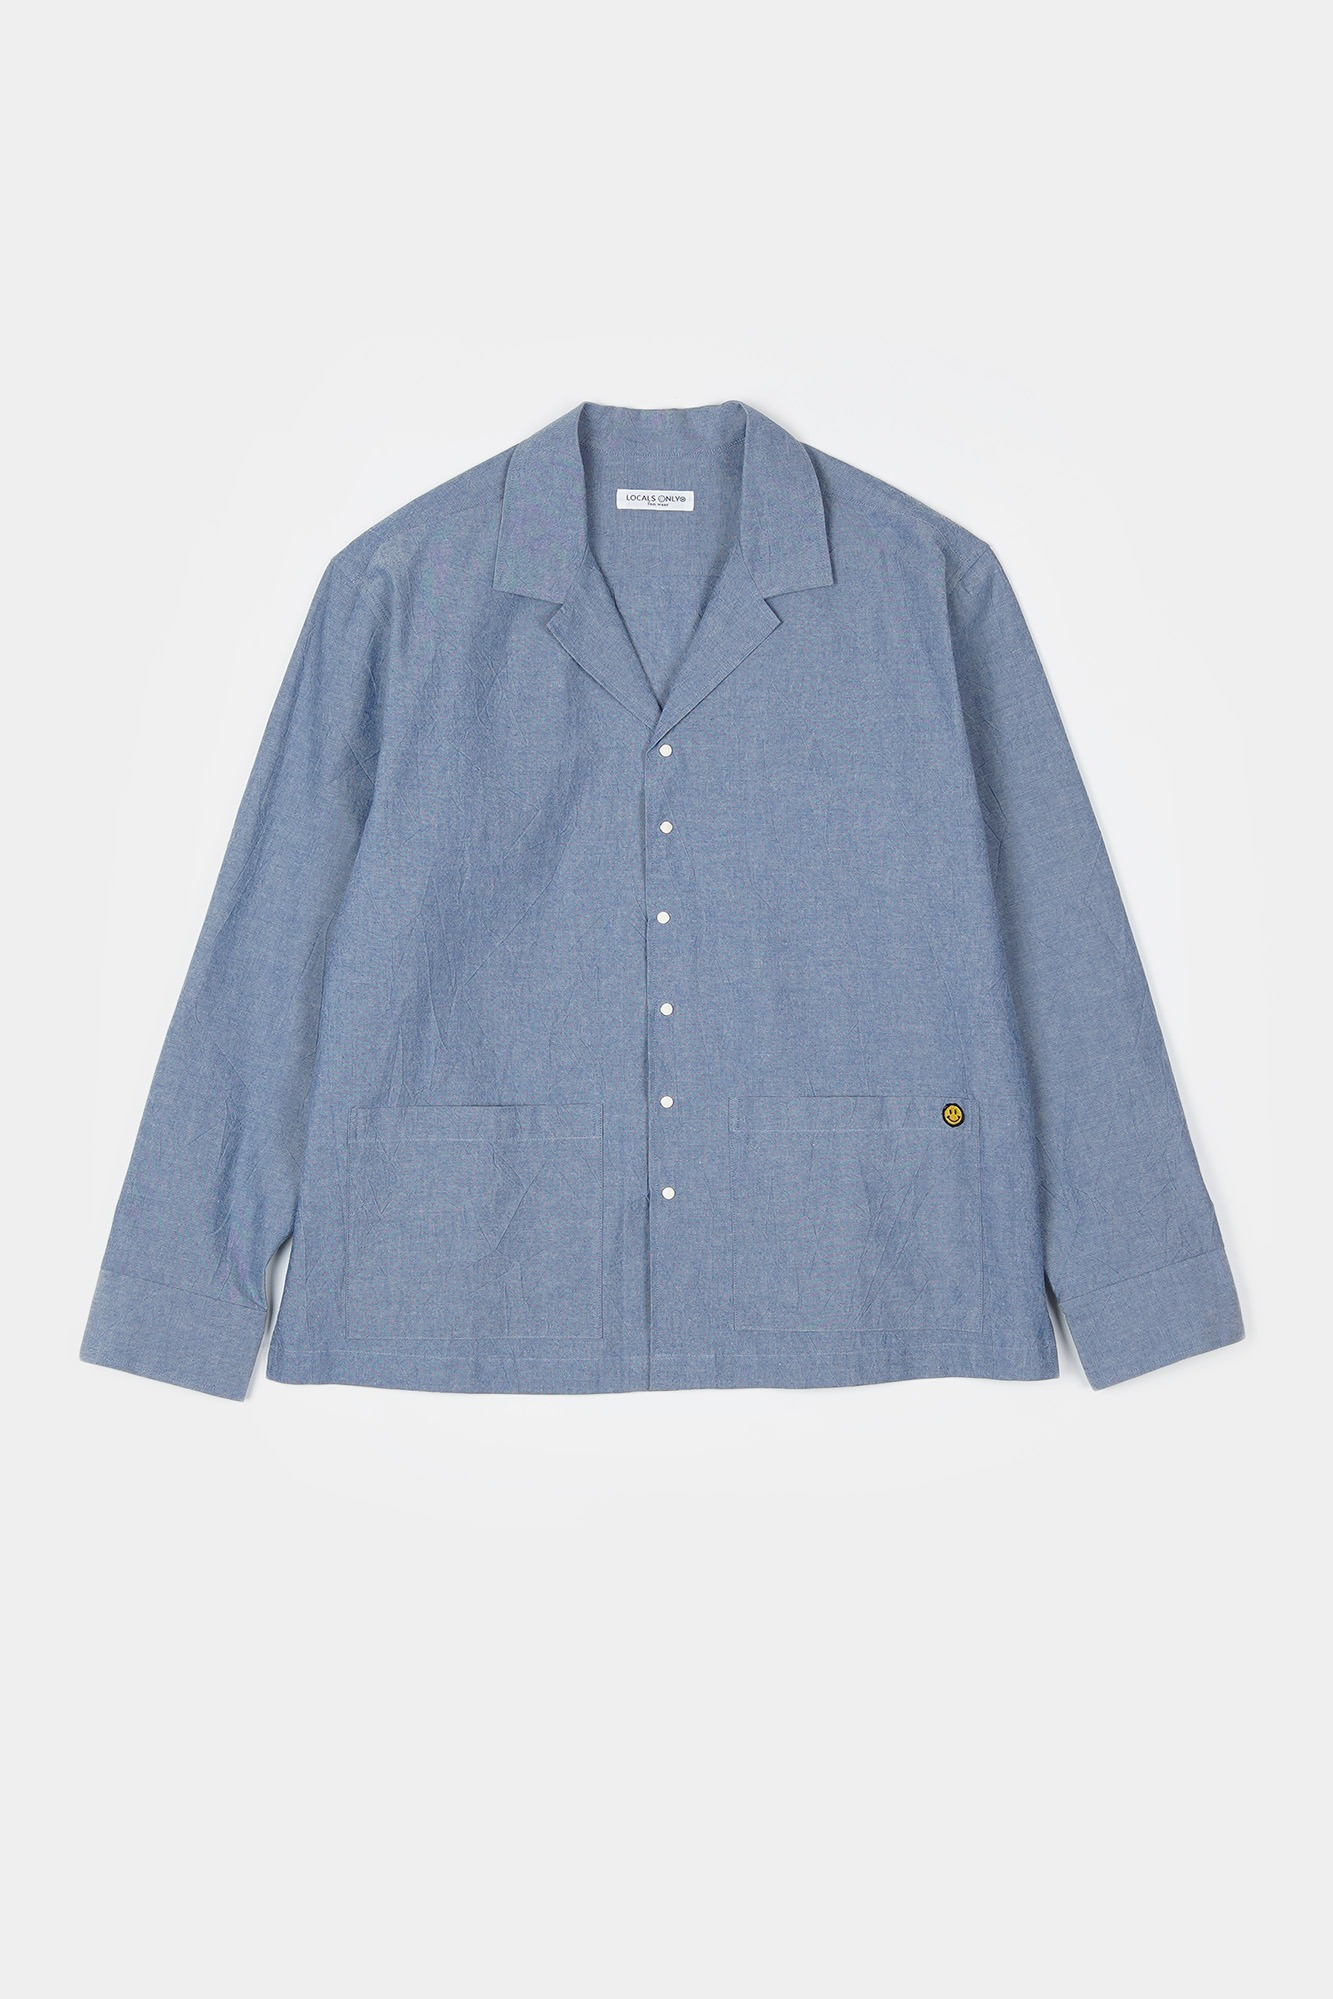 "LOCLAS ONLY Chambray Open Collar Shirts Jacket ""Indigo"""